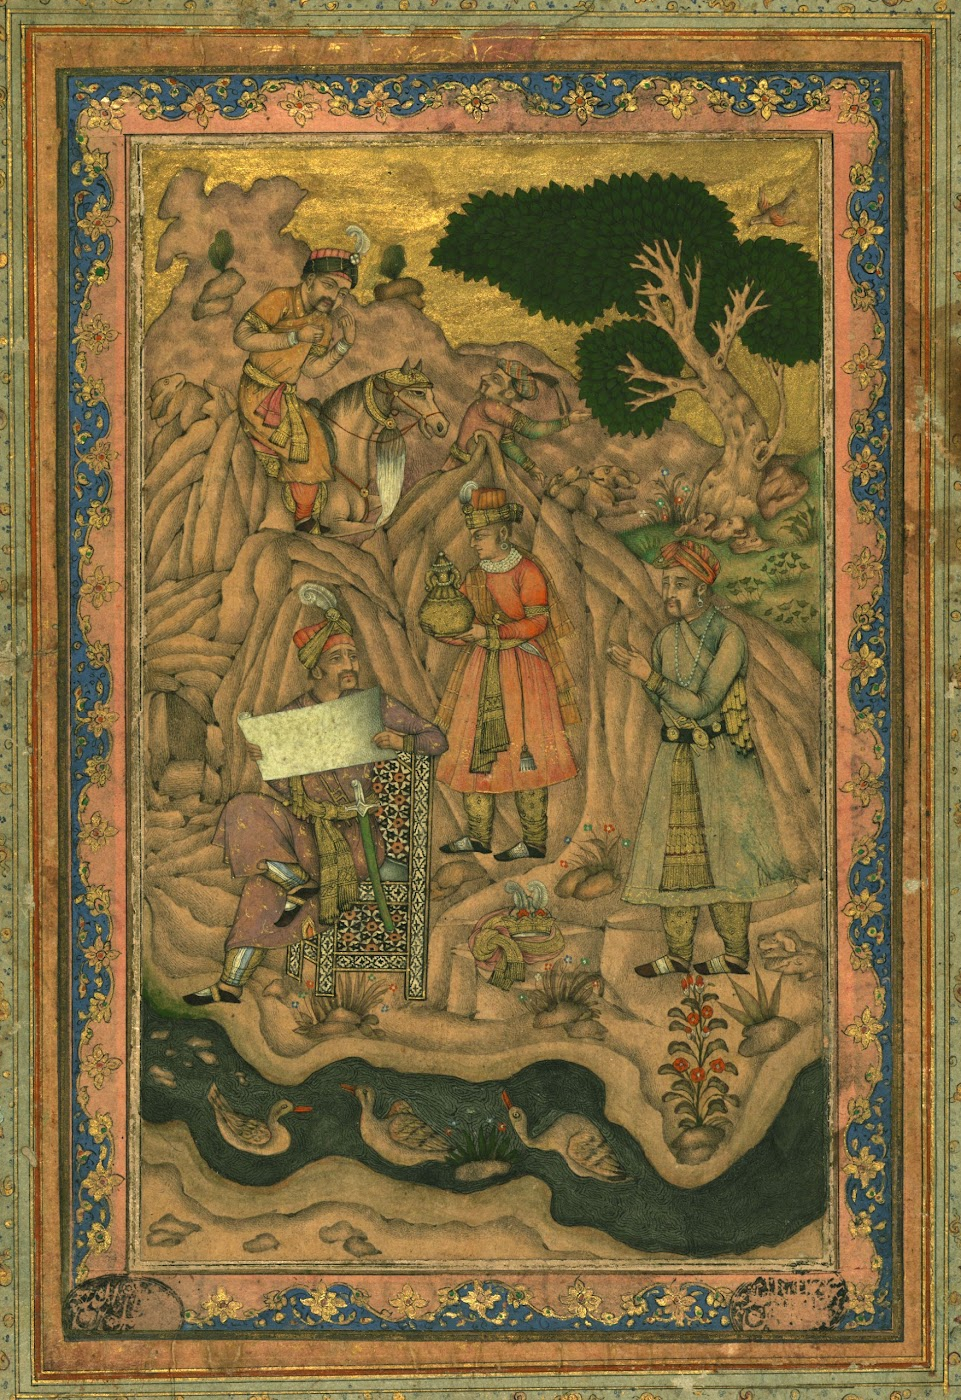 Mughal Emperor with a Docuemnt - Mughal Painting, circa 18th or 19th Century